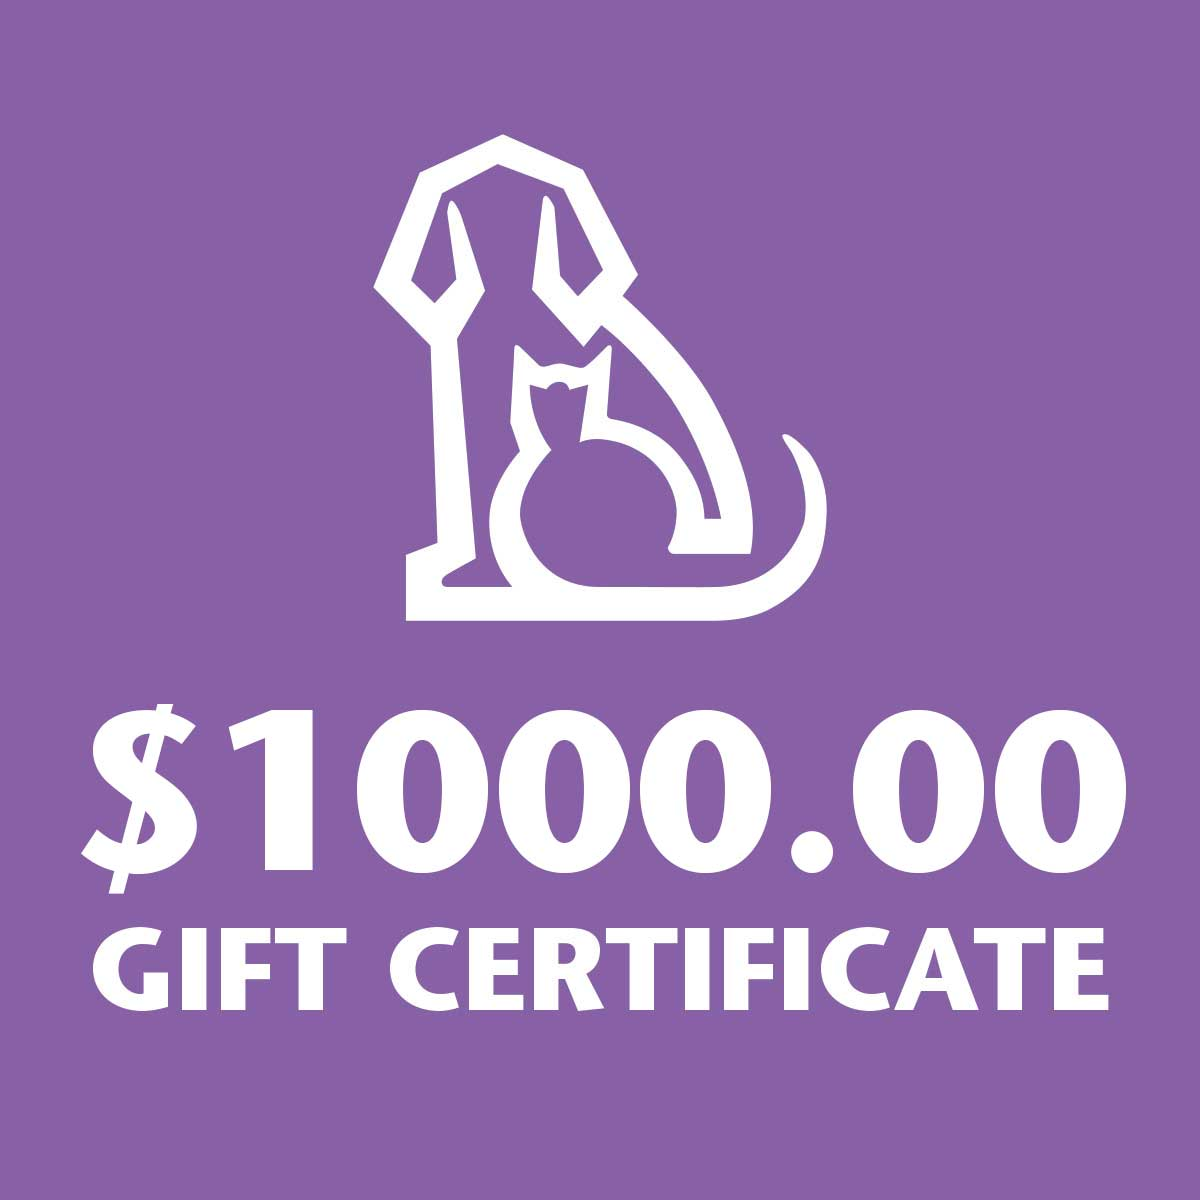 1000 Gift Certificate